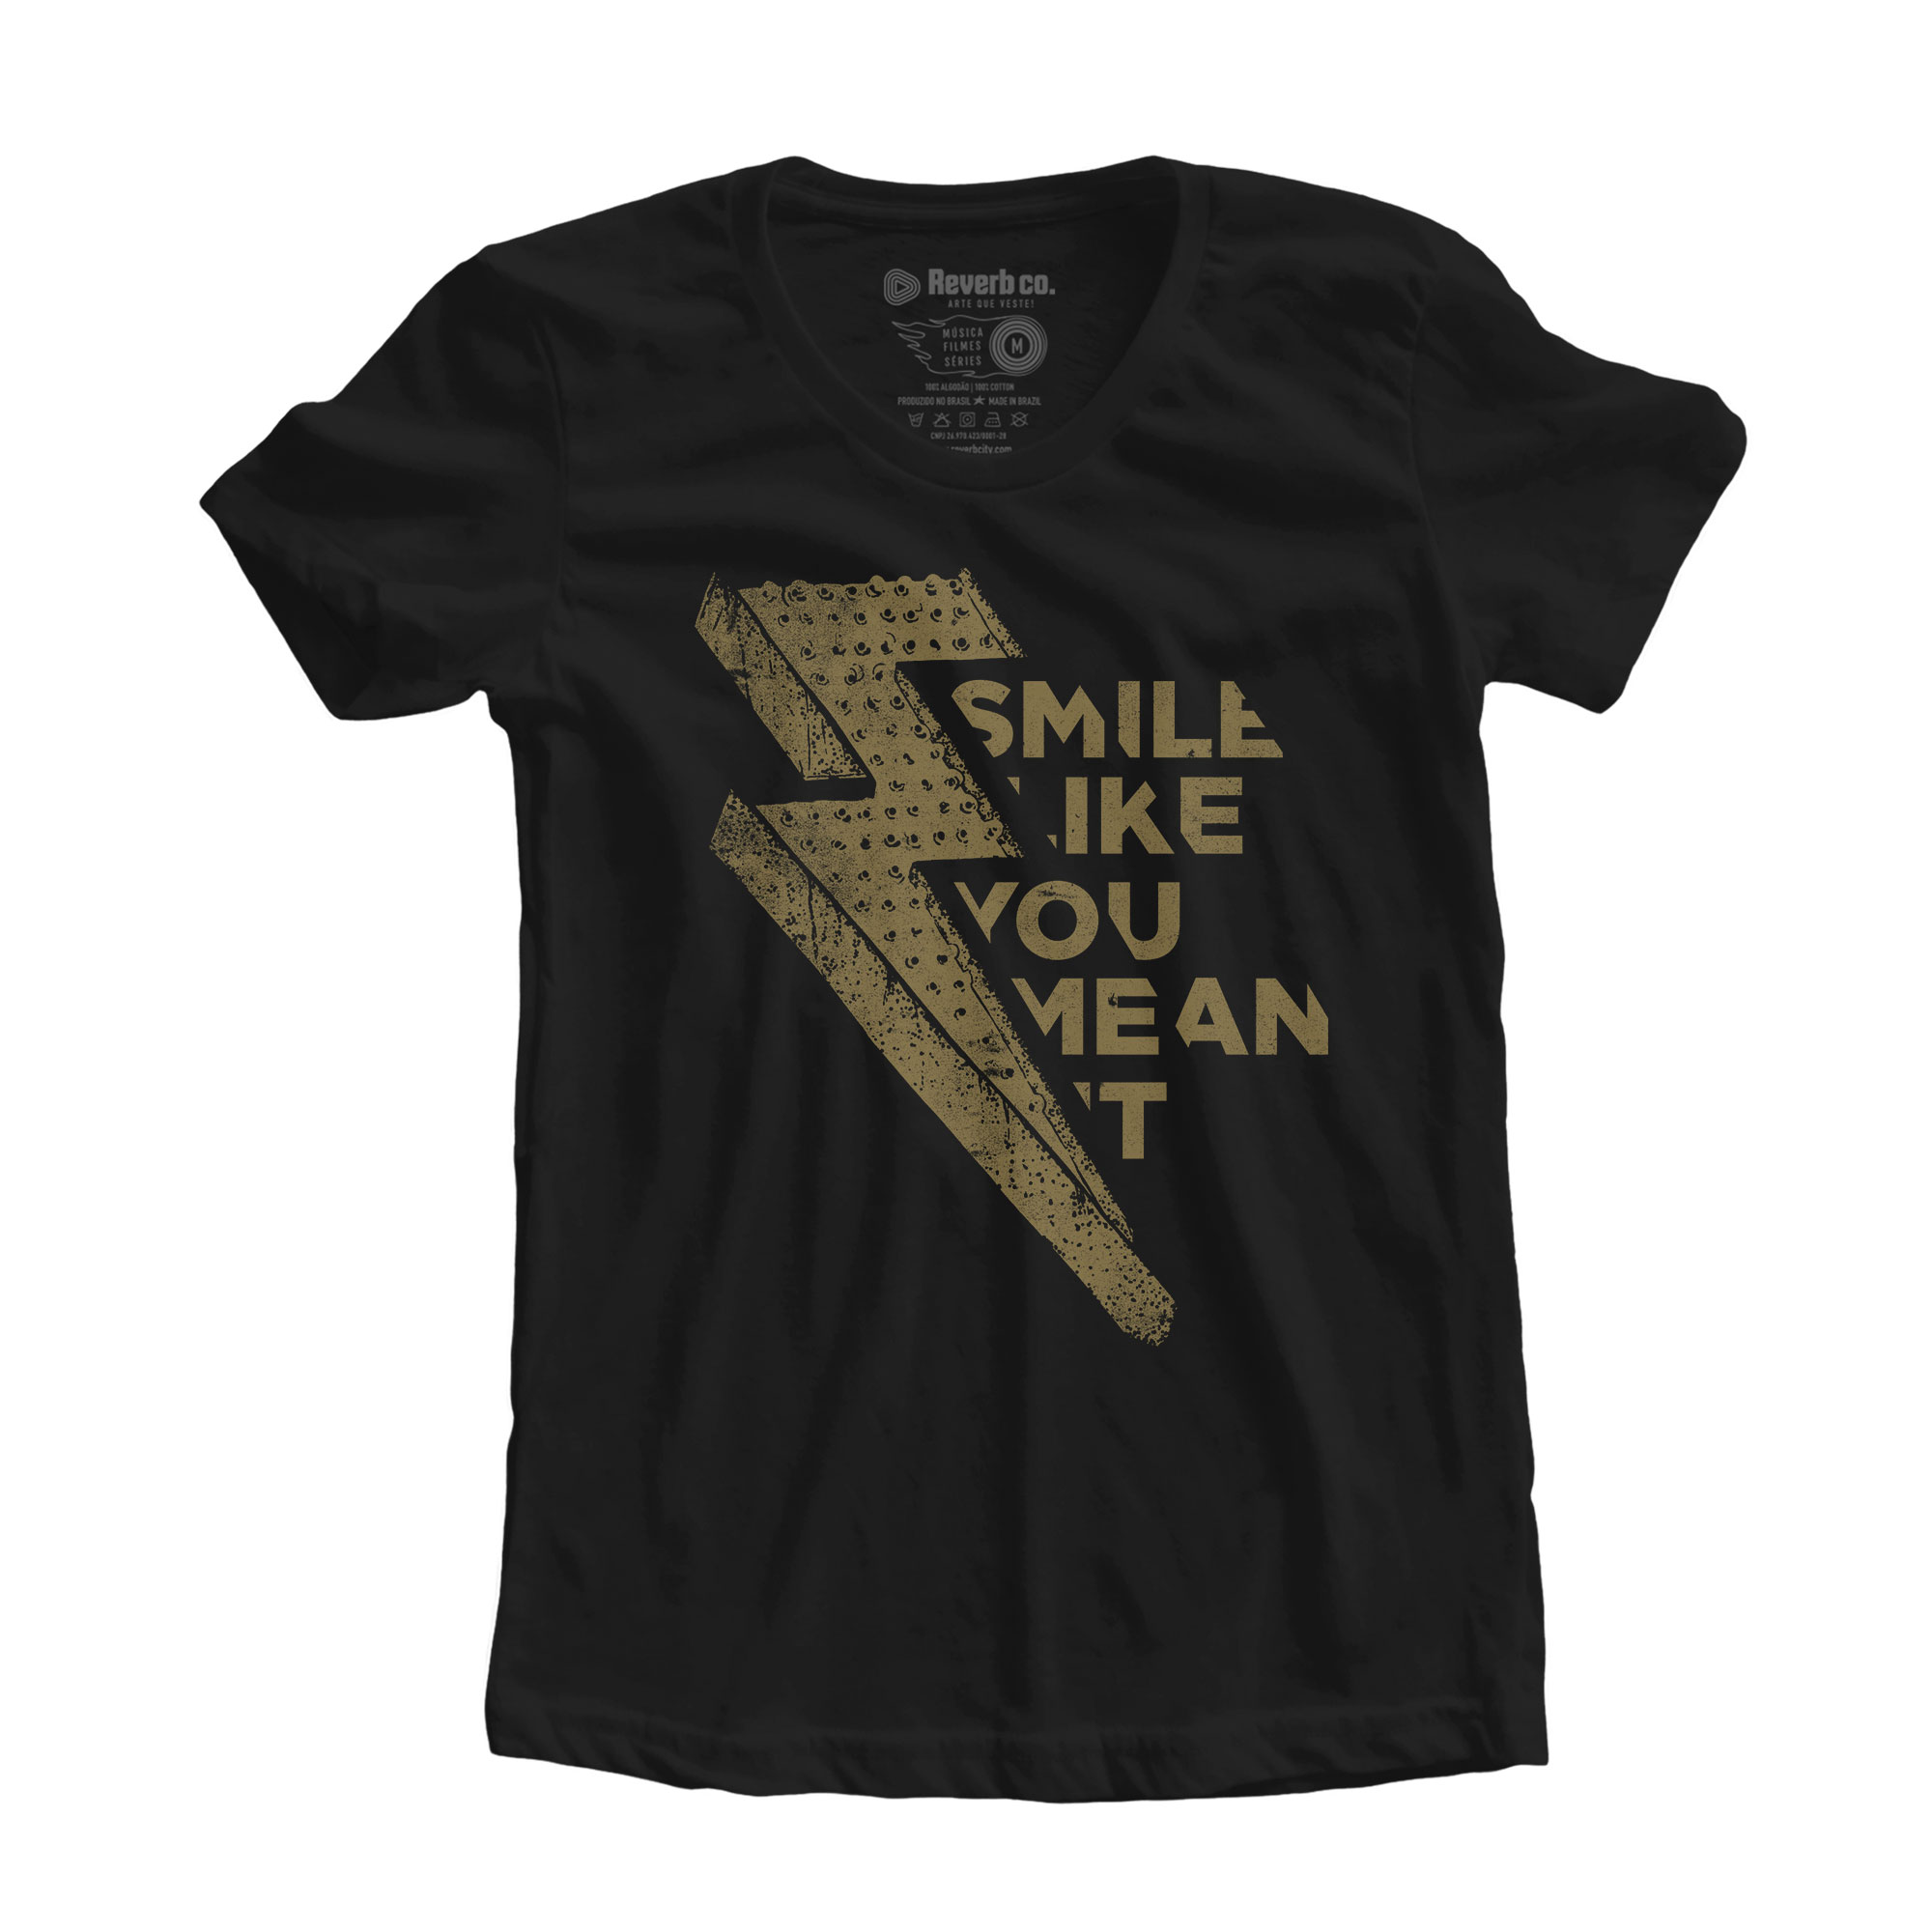 Camiseta Smile Like You Mean It - The Killers - Feminino